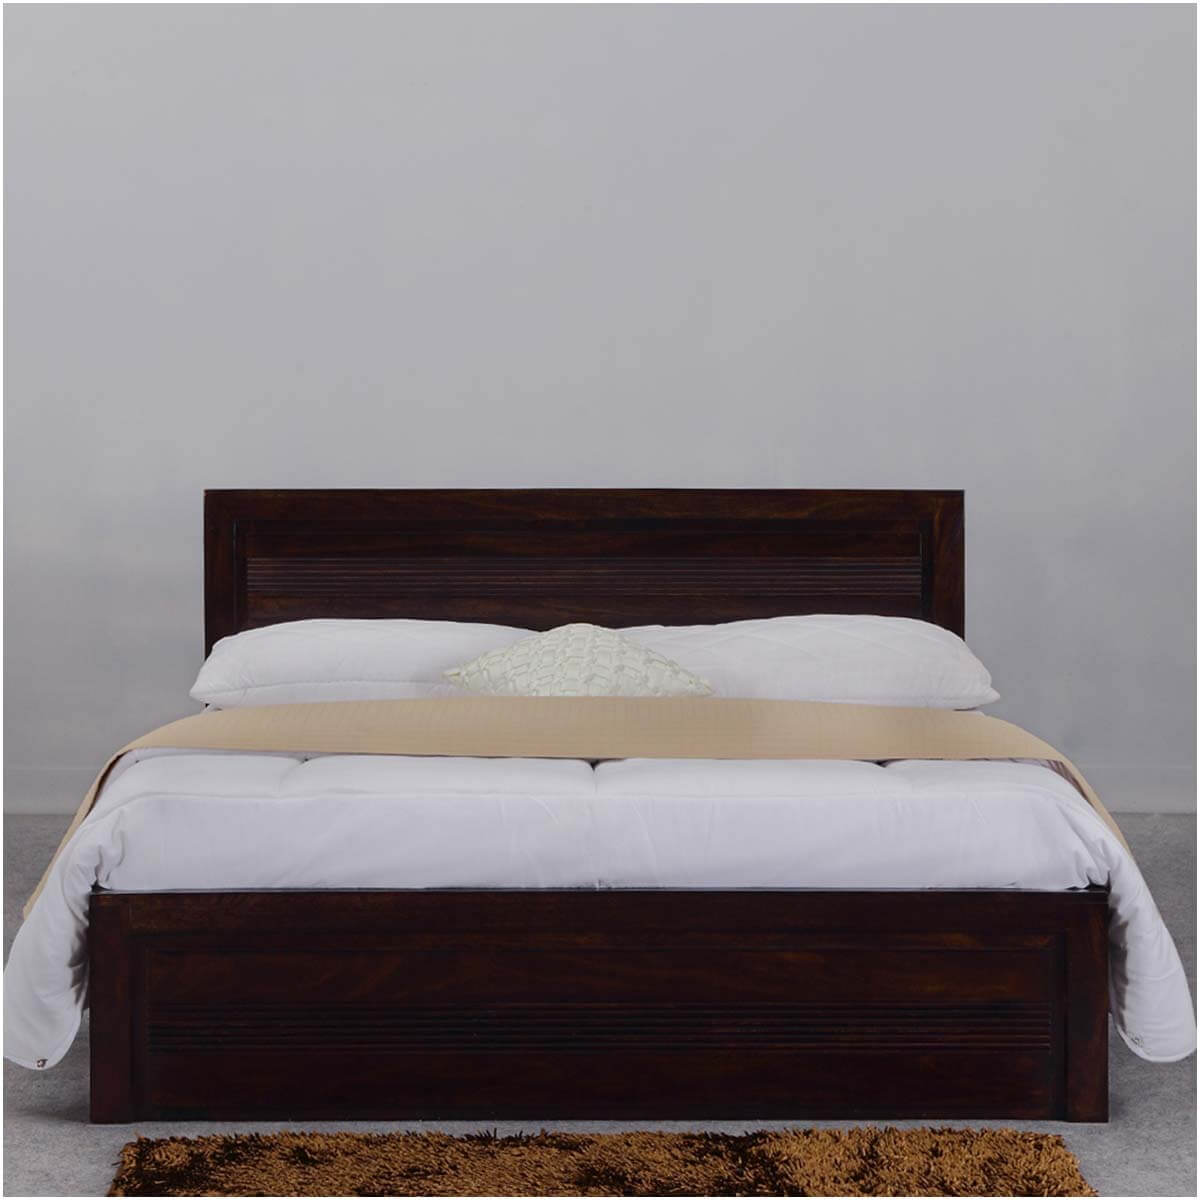 solid wood headboard 28 images rockford solid wood  : 75551 from 45.32.161.28 size 1200 x 1200 jpeg 90kB